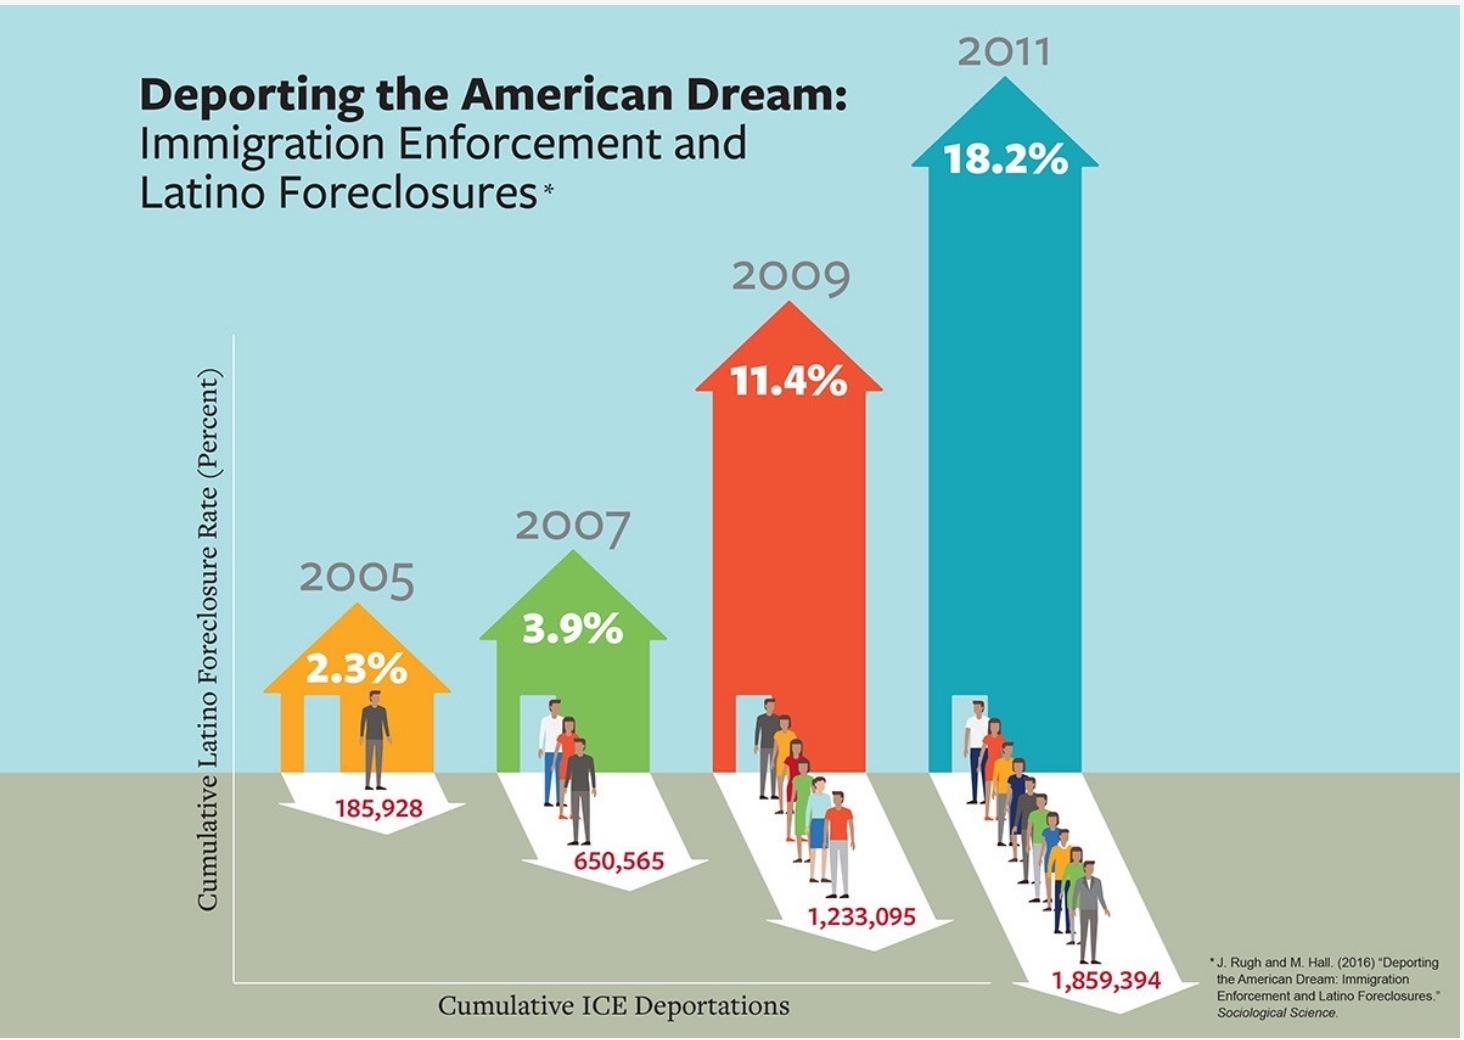 deporting the american dream